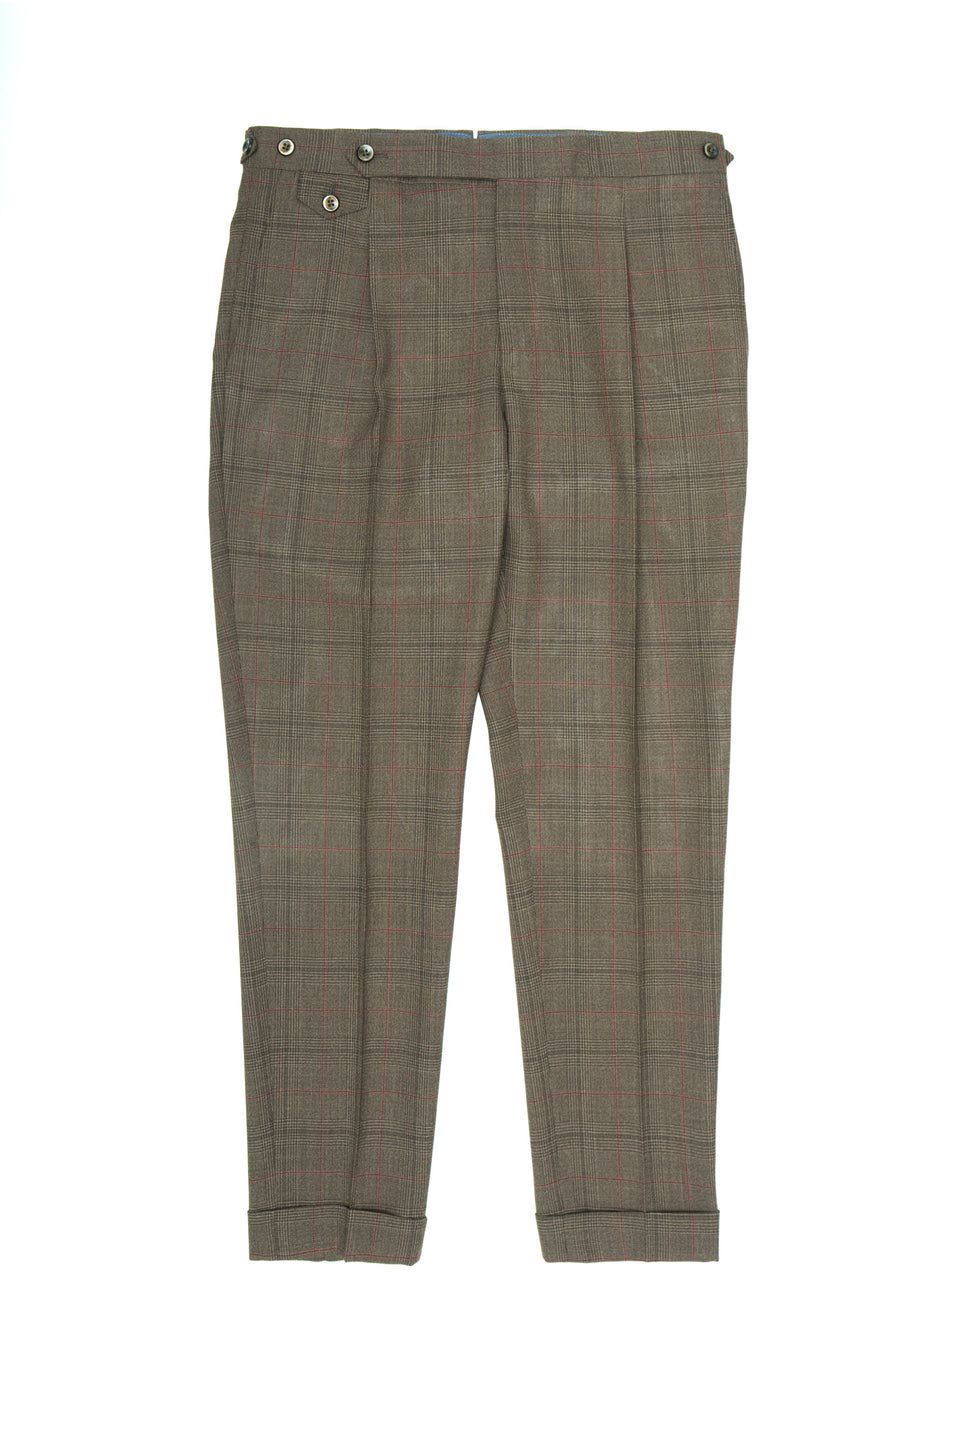 Gentleman Fit - 1Pleat - Fancy Wool